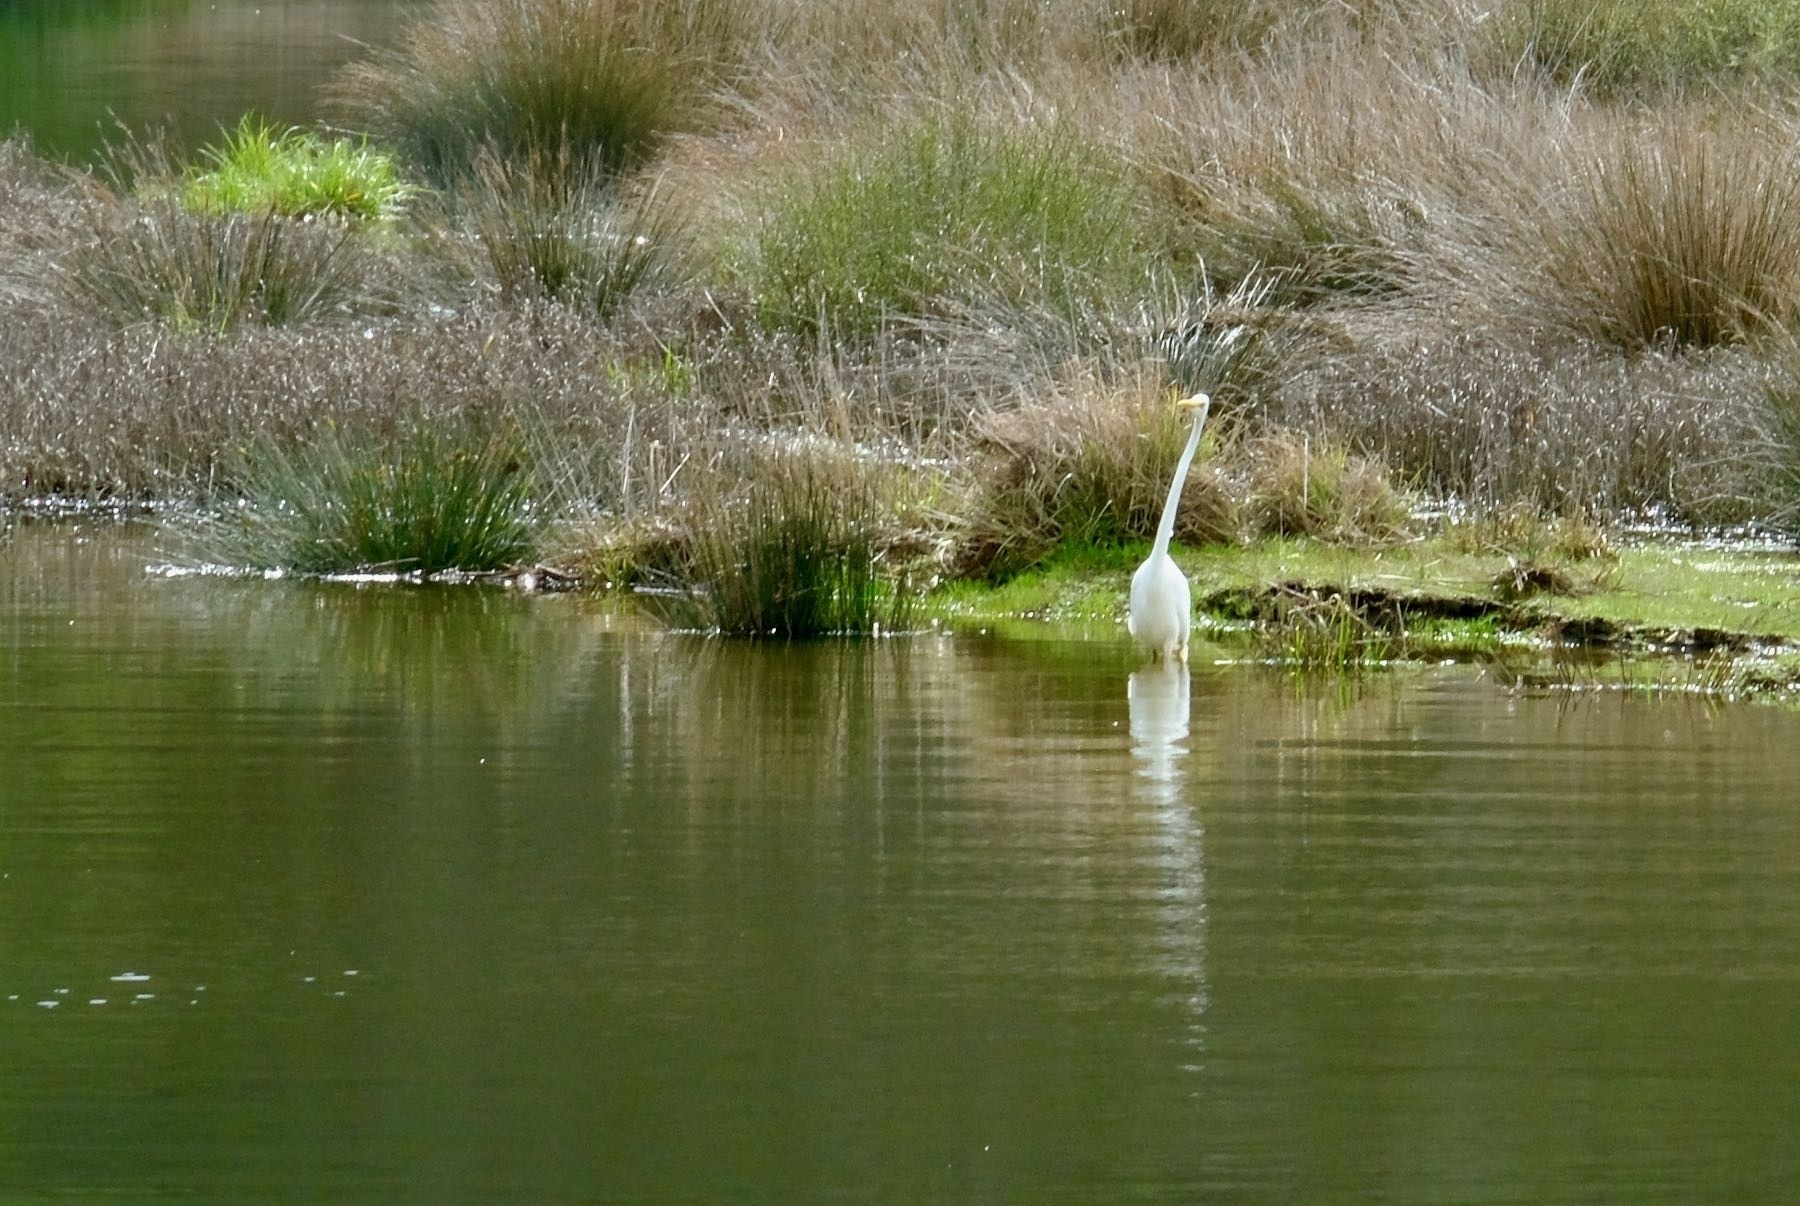 Large white bird wading with neck extended at an unusual angle.